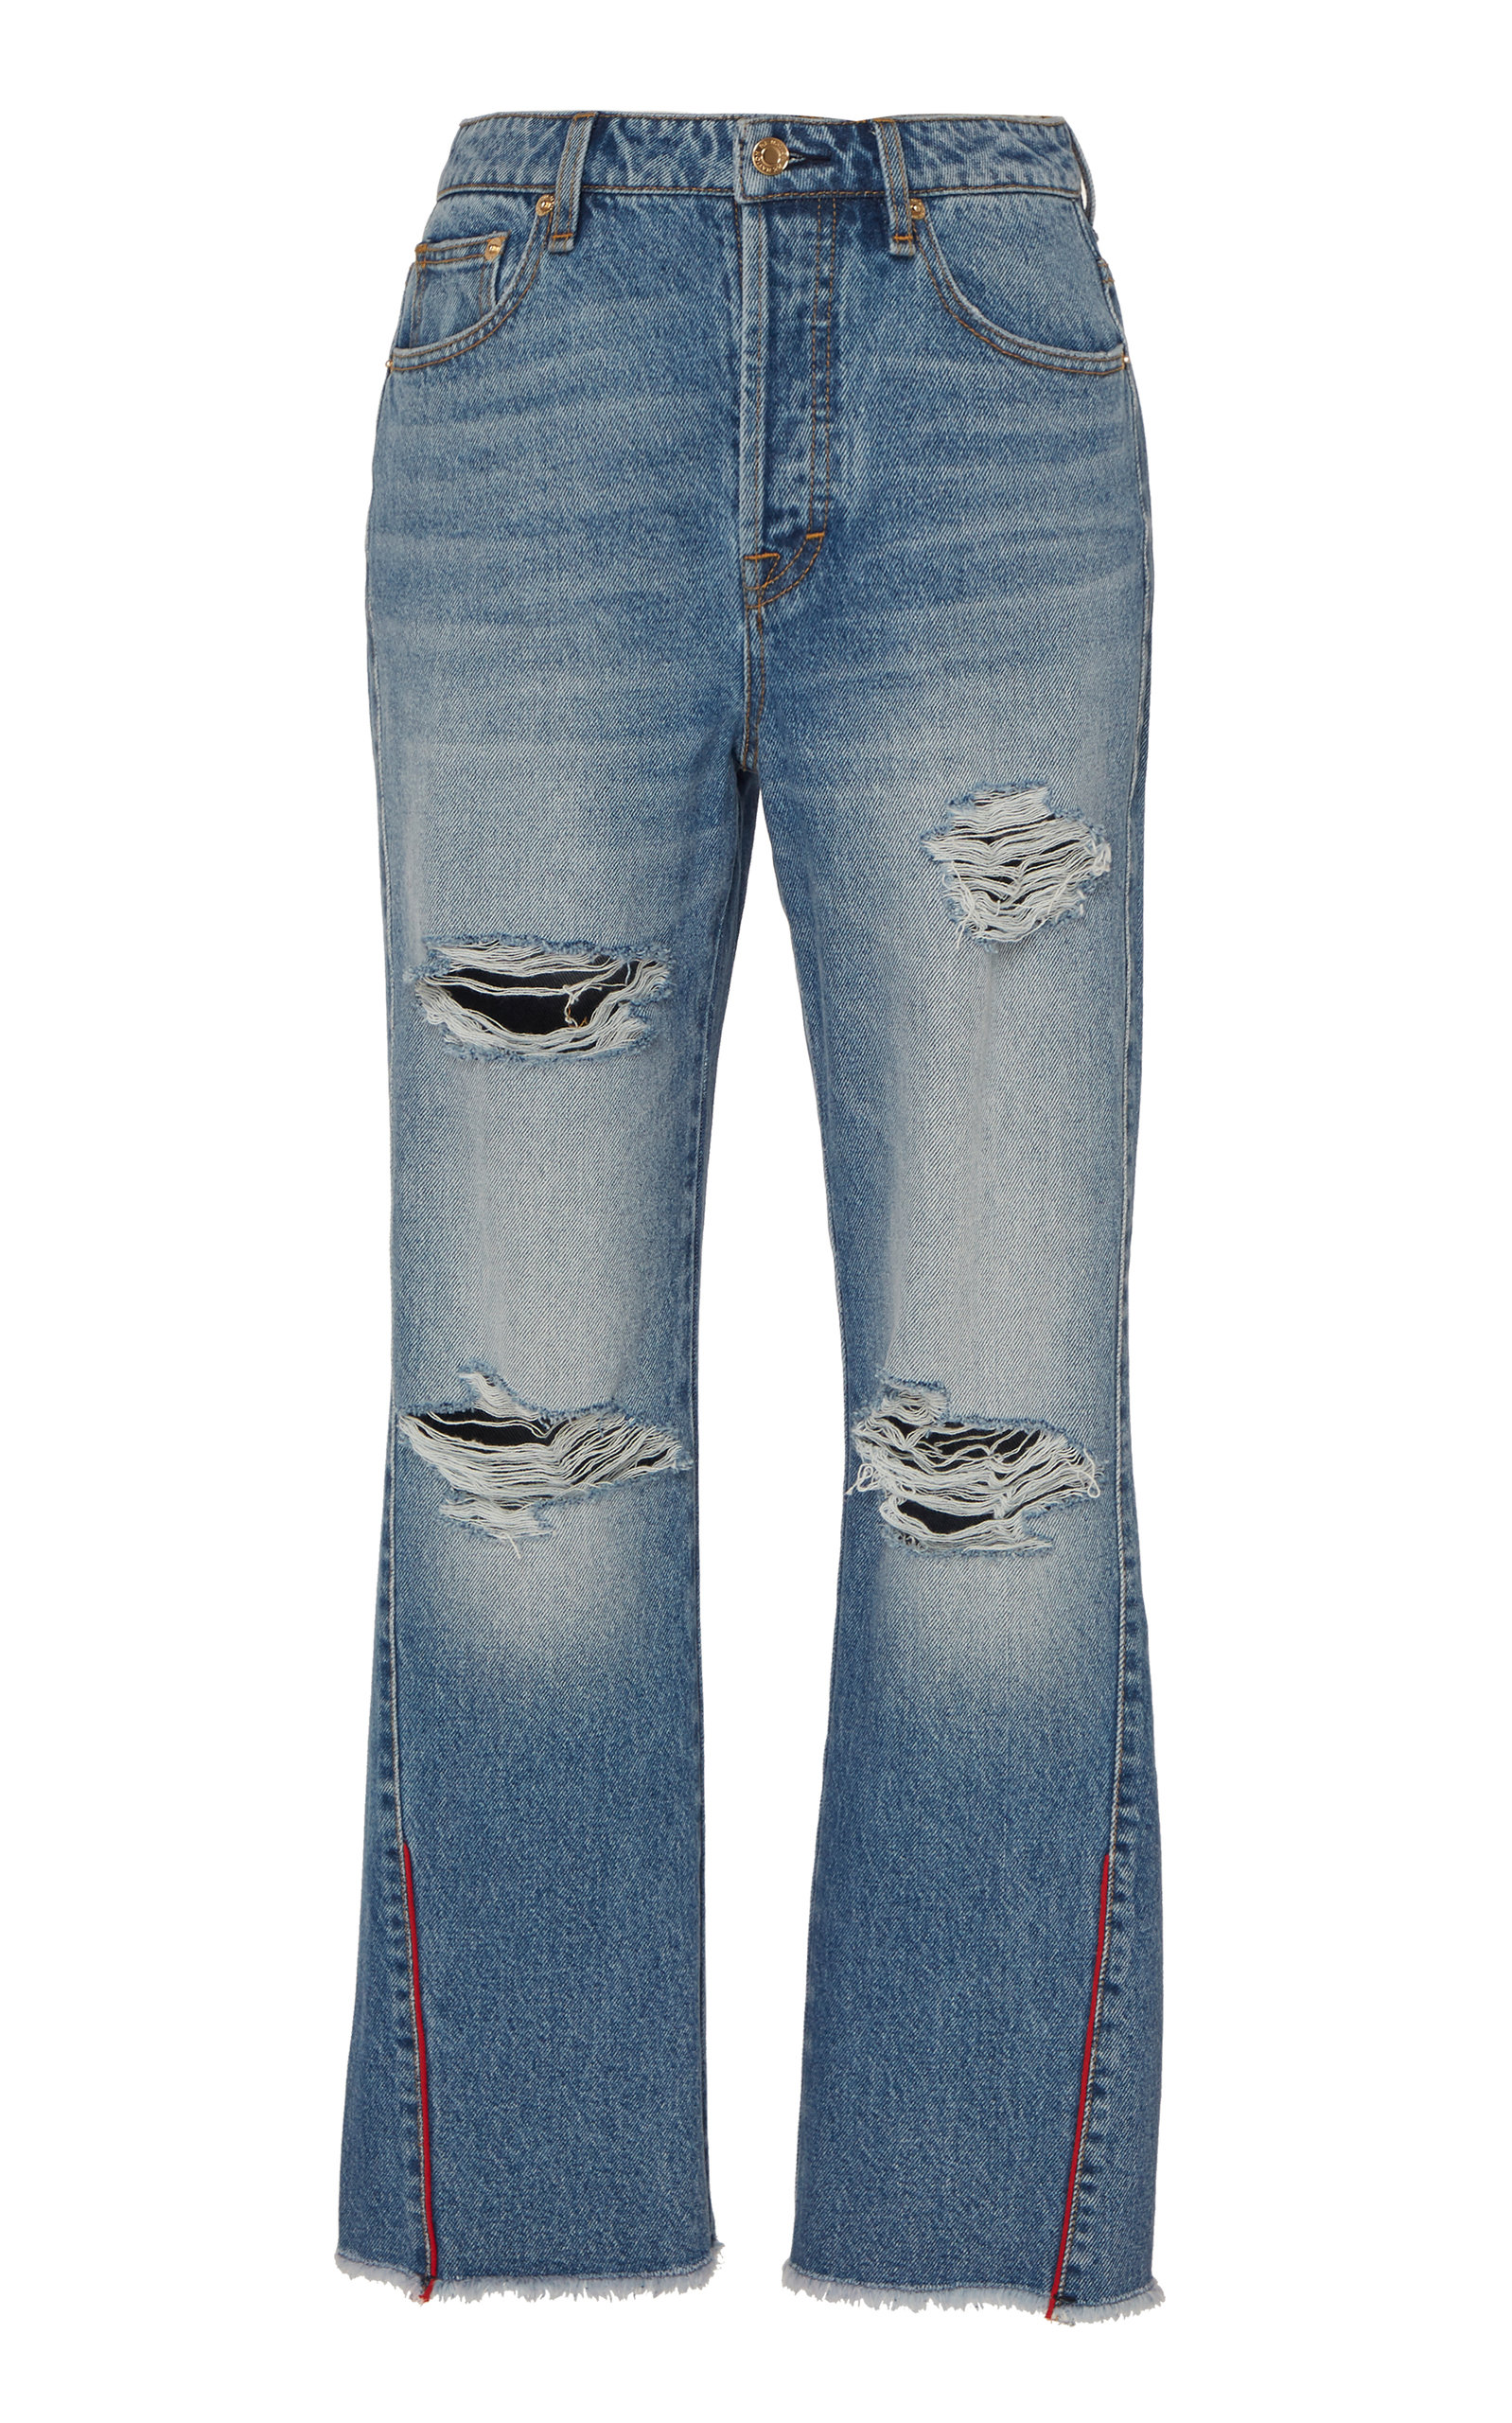 P.e Nation Jeans The 1995 High-Rise Cropped Jean